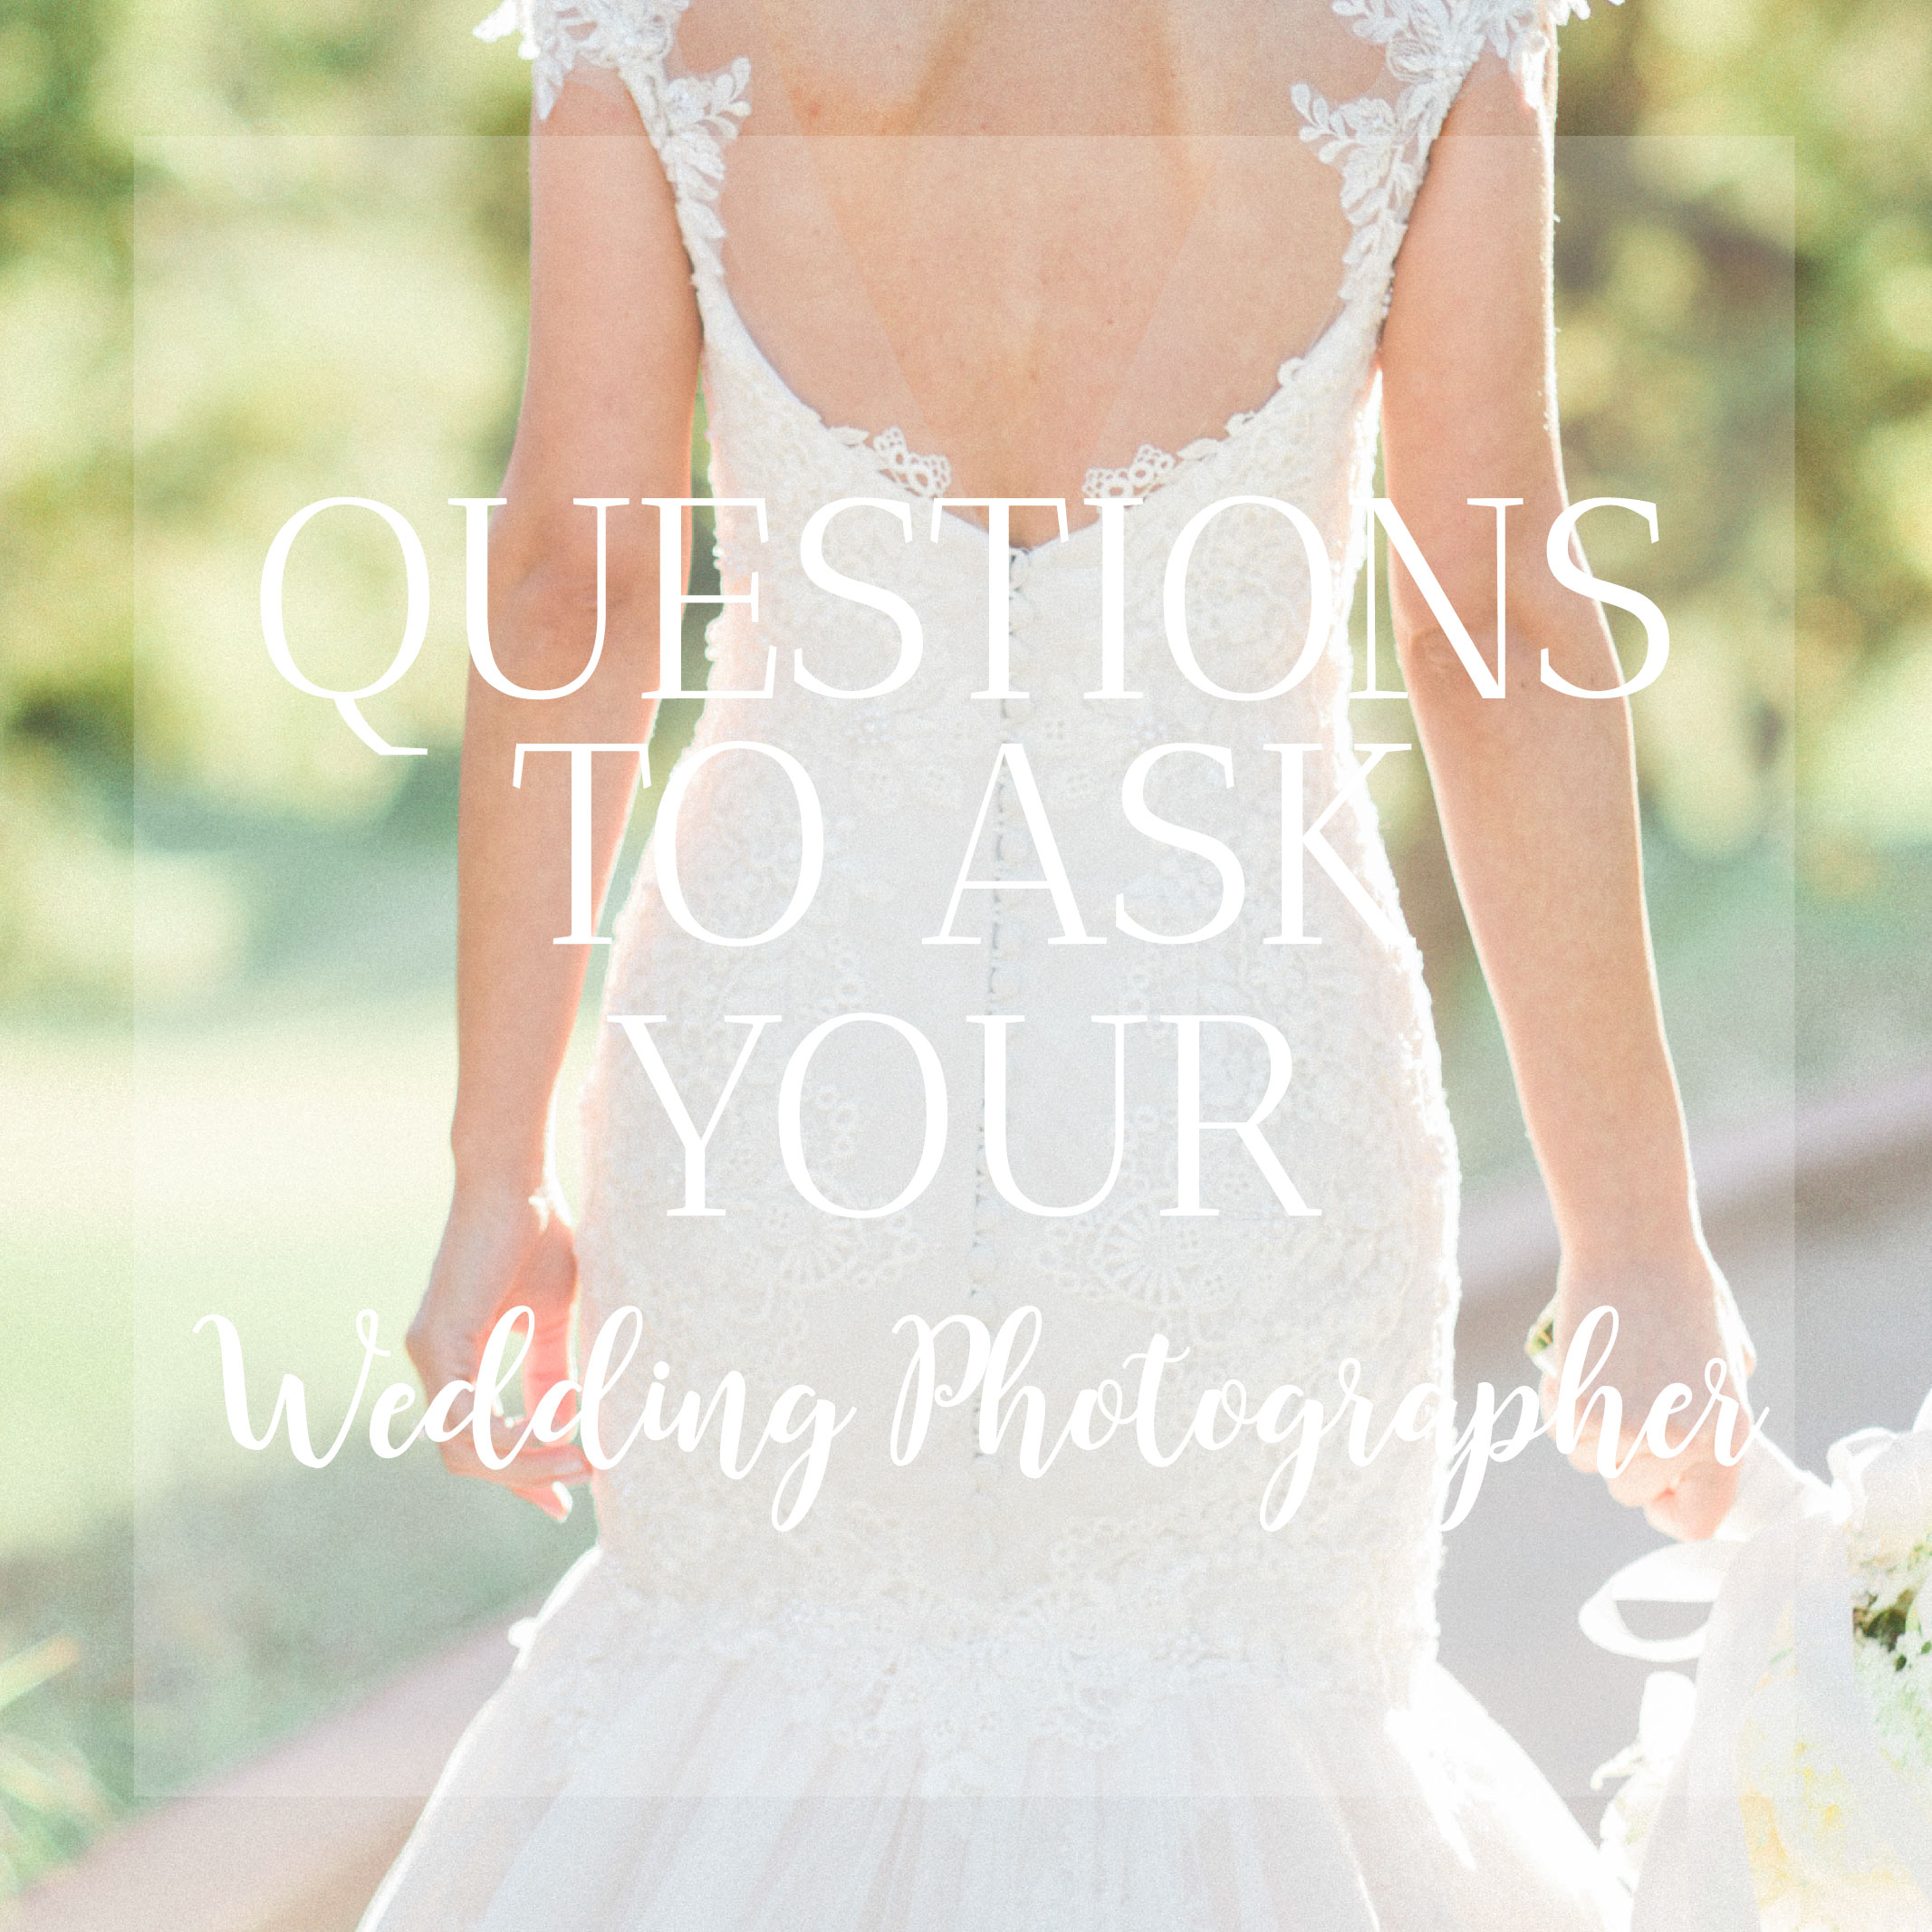 Questions To Ask Your Wedding Photographer.Questions To Ask Your Wedding Photographer Madison Ellis Photography